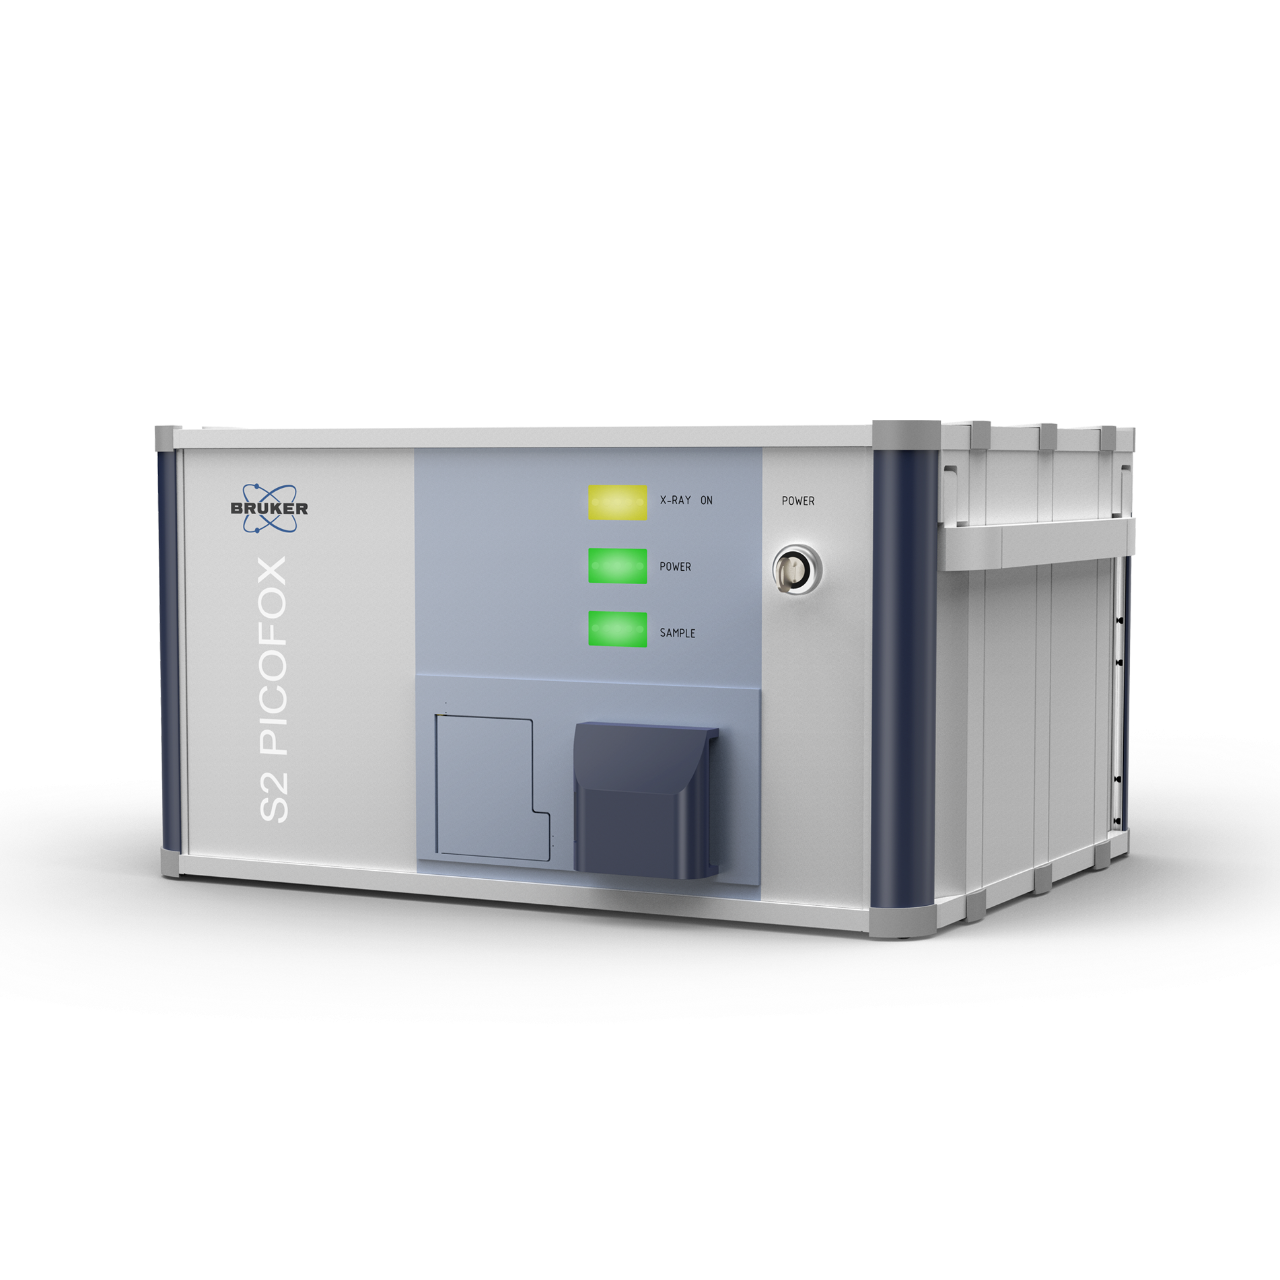 S2 PICOFOX is a transportable TXRF spectrometer of Bruker for ultra-trace element analysis